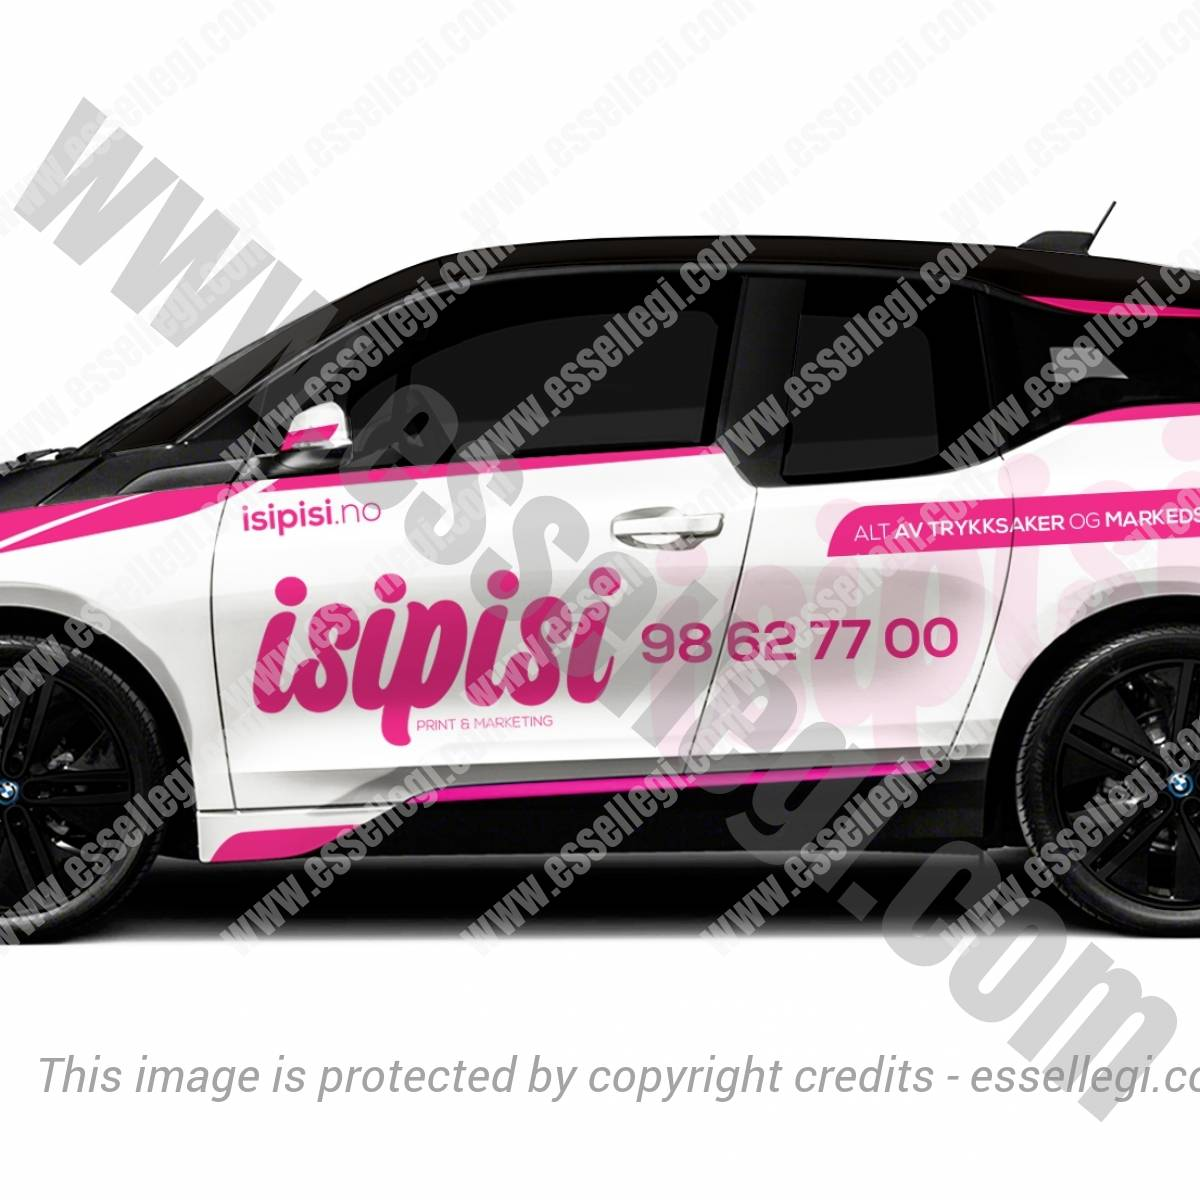 ISIPISI | CAR WRAP DESIGN 🇳🇴